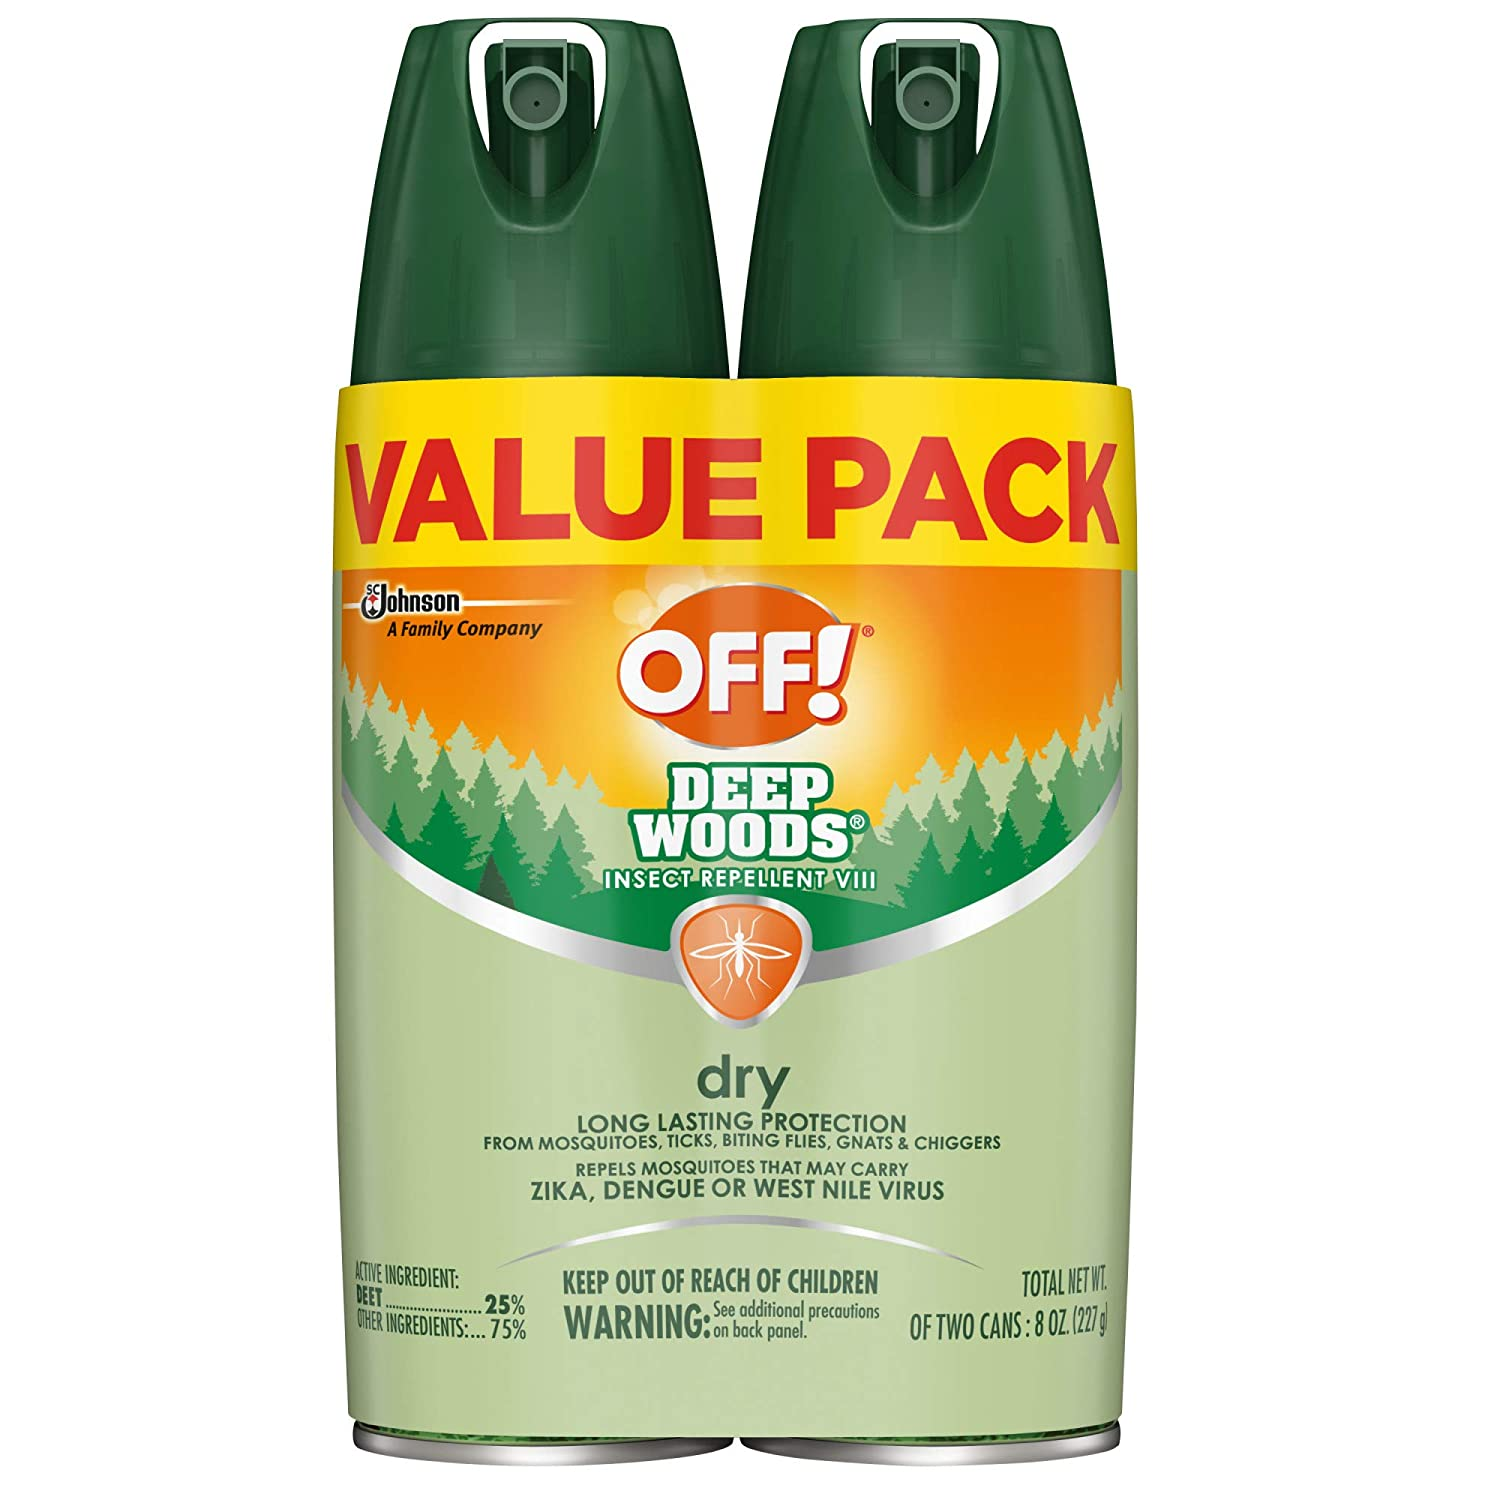 OFF! Deep Woods Insect Repellent 2-Pack ONLY $8.57 Shipped